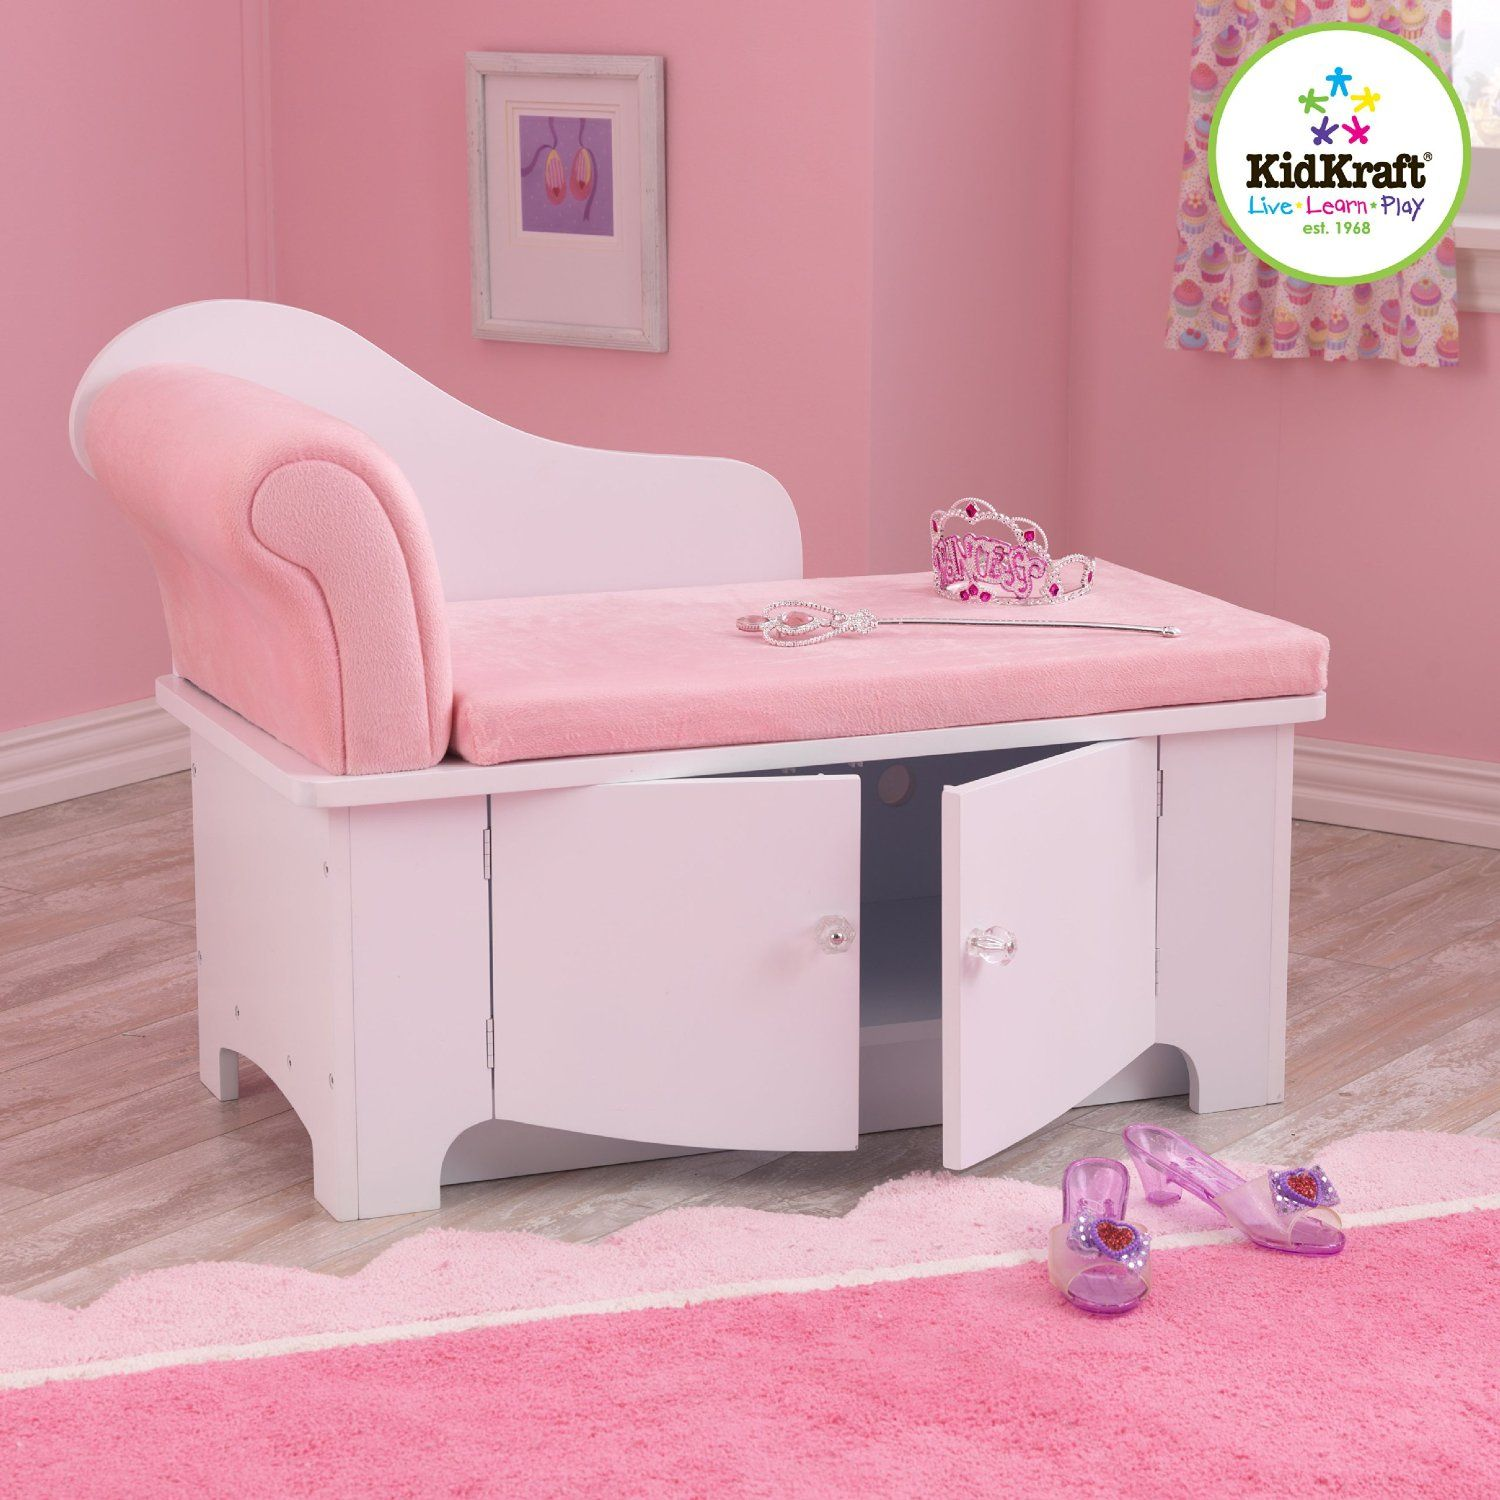 Remarkable Amazon Com Kidkraft Girls Princess Chaise Lounge Home Gmtry Best Dining Table And Chair Ideas Images Gmtryco